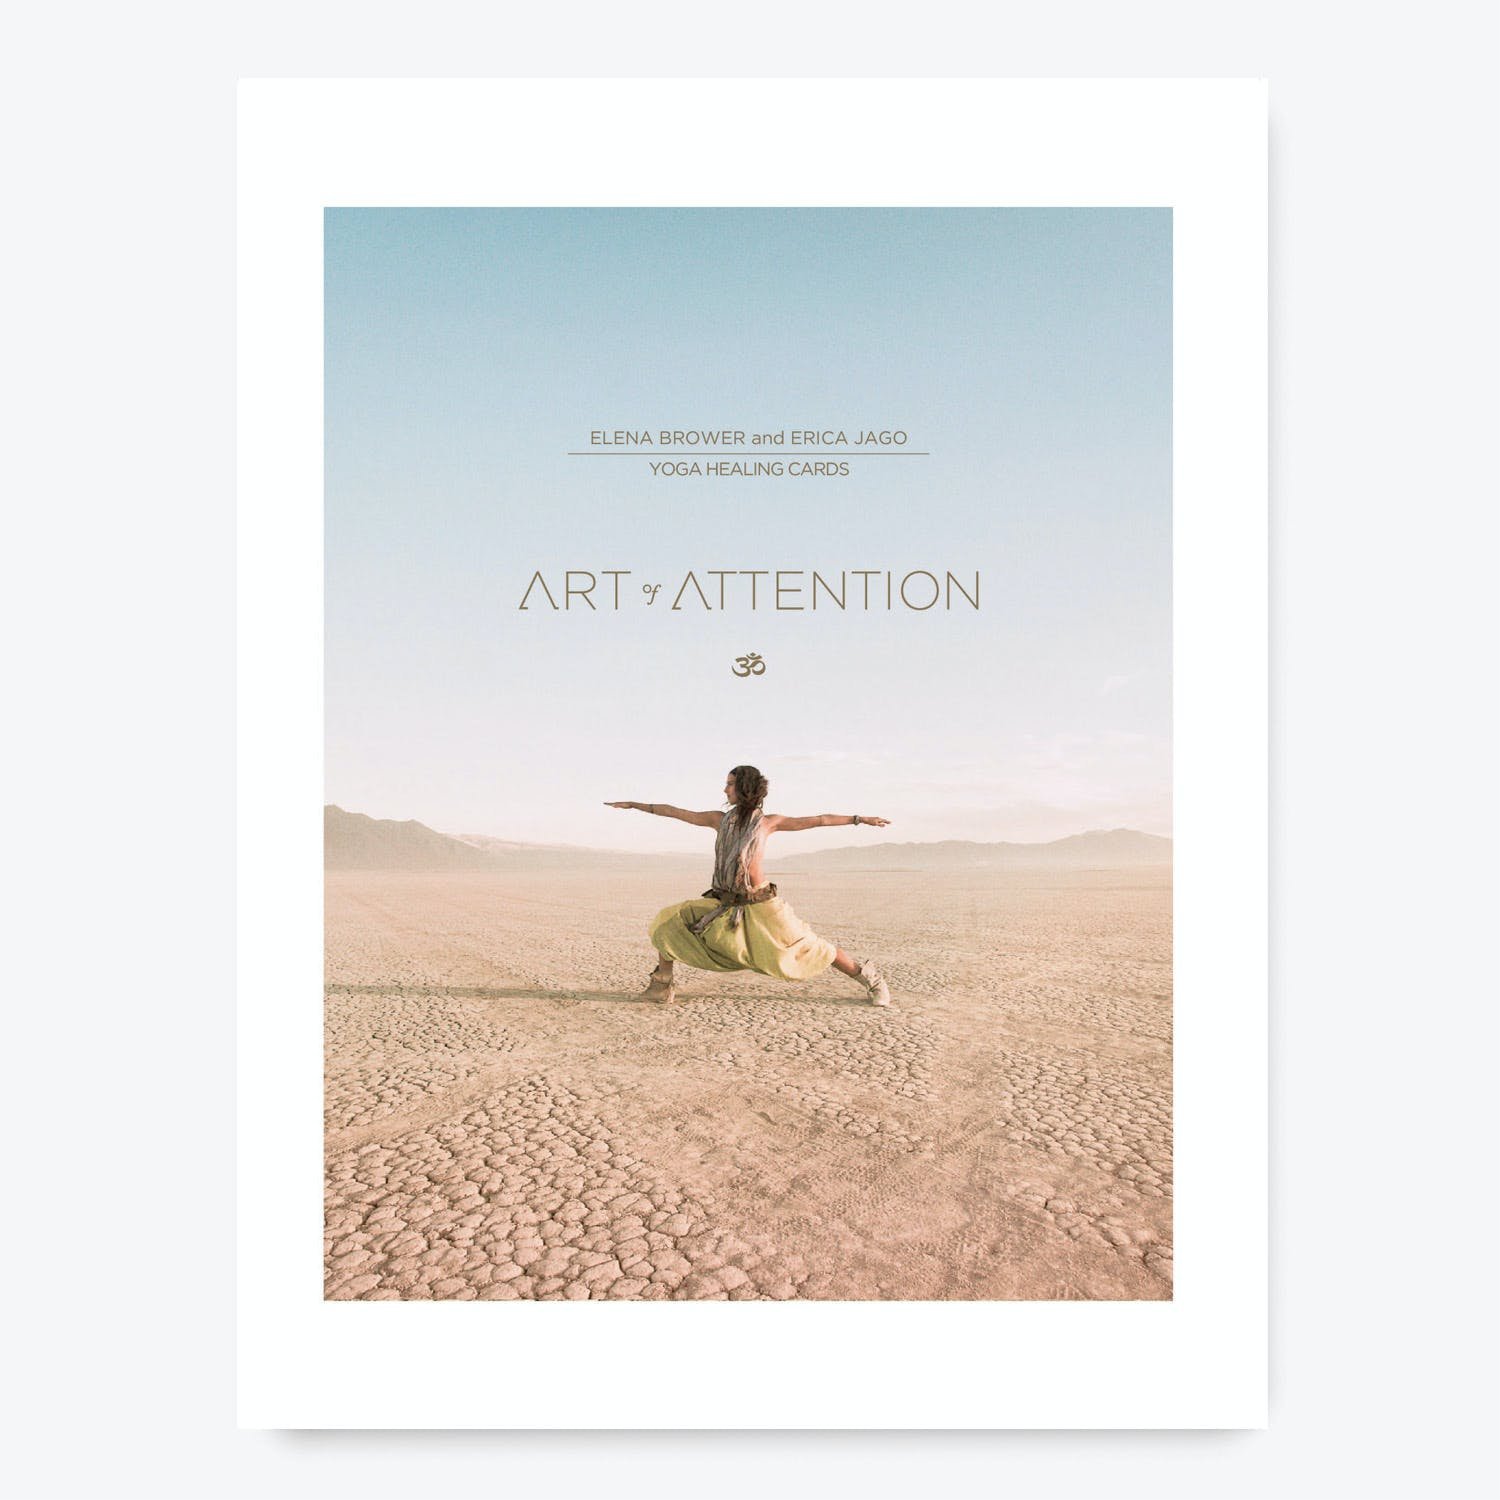 Art of Attention: Yoga Healing Cards By Elena Brower and Erica Jago